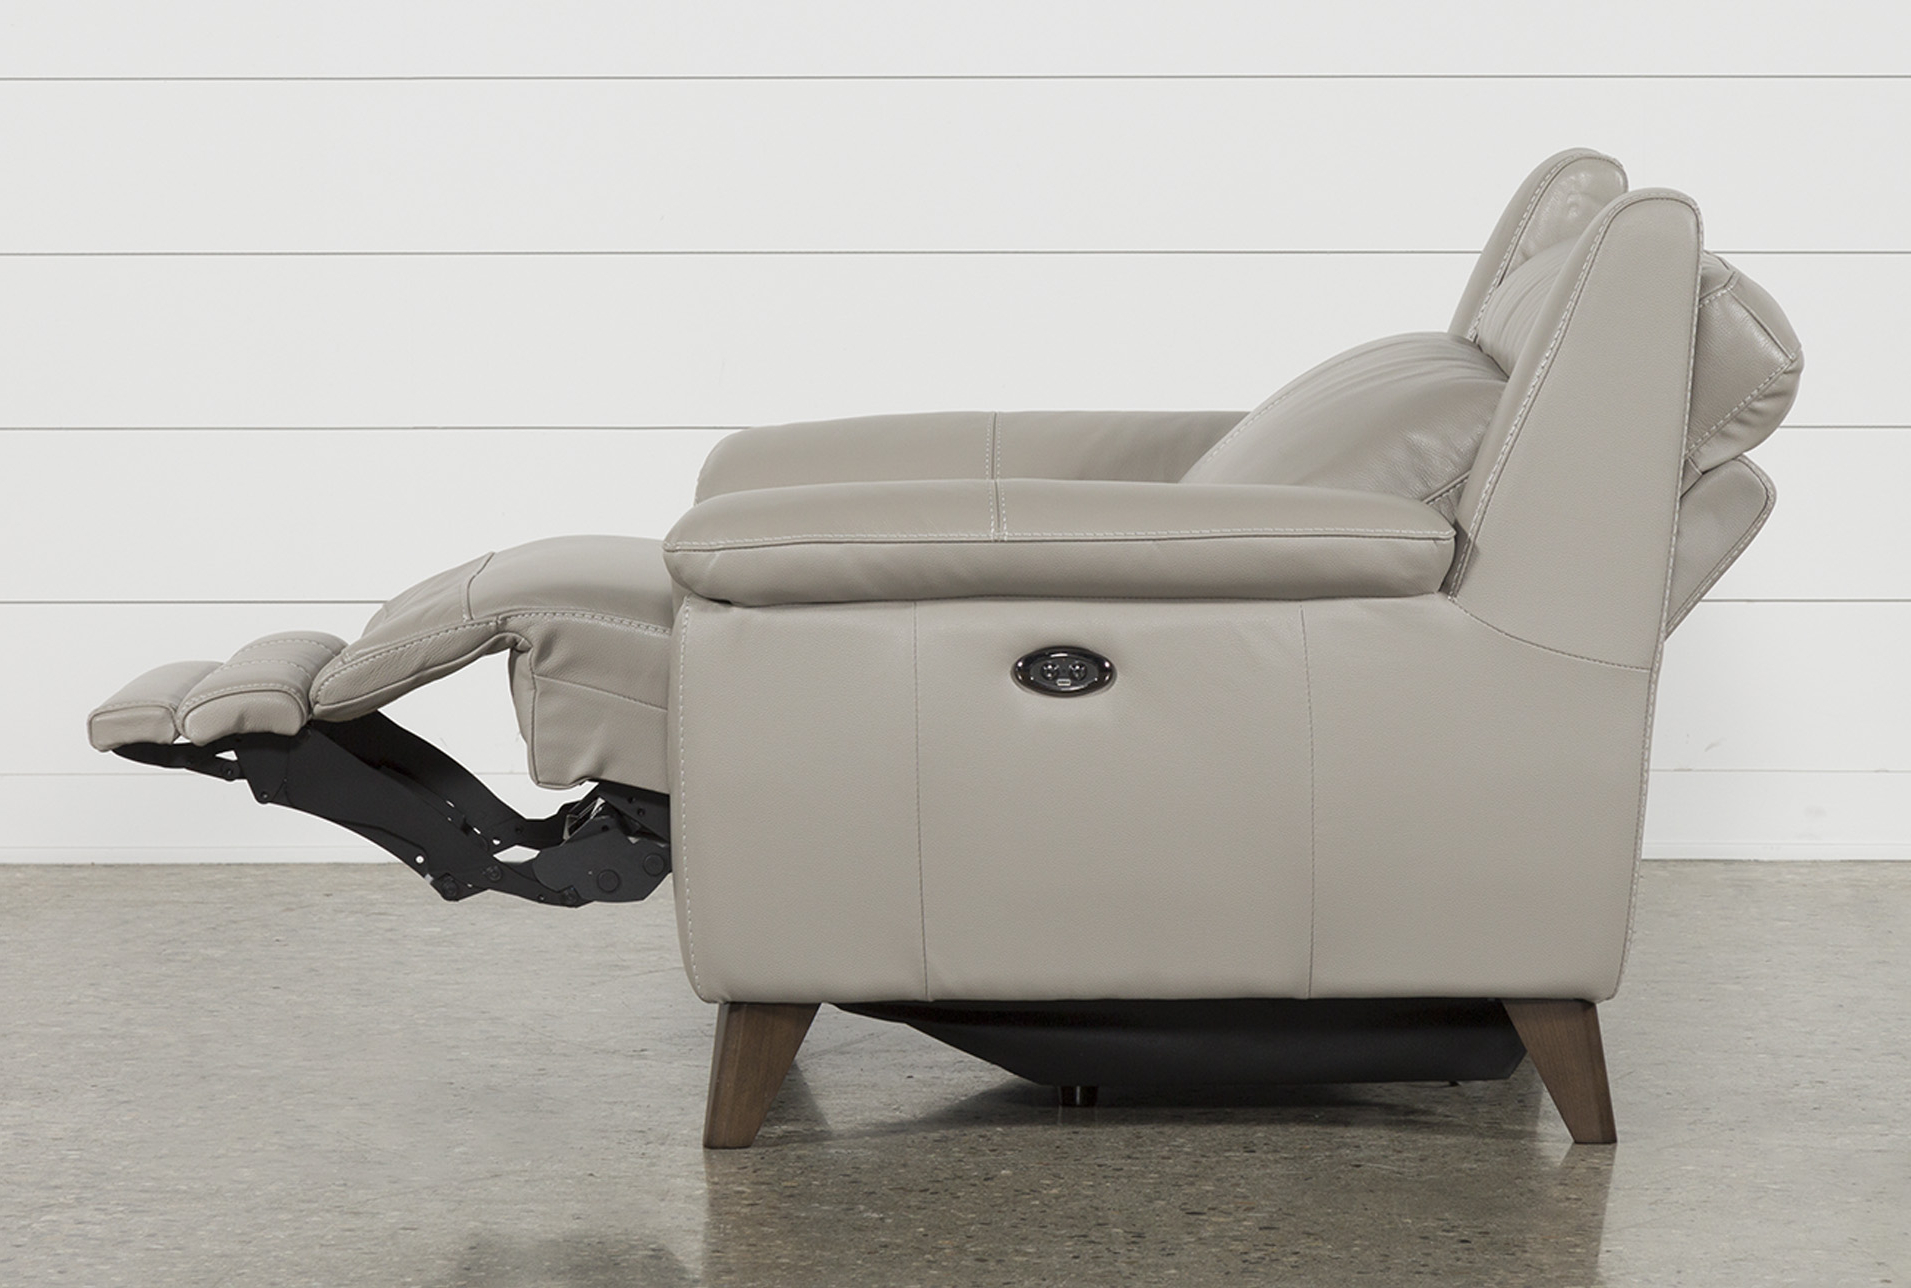 Moana Taupe Leather Power Reclining Sofa Chairs With Usb Within Most Recently Released Moana Taupe Leather Power Reclining Chair With Usb (View 2 of 20)